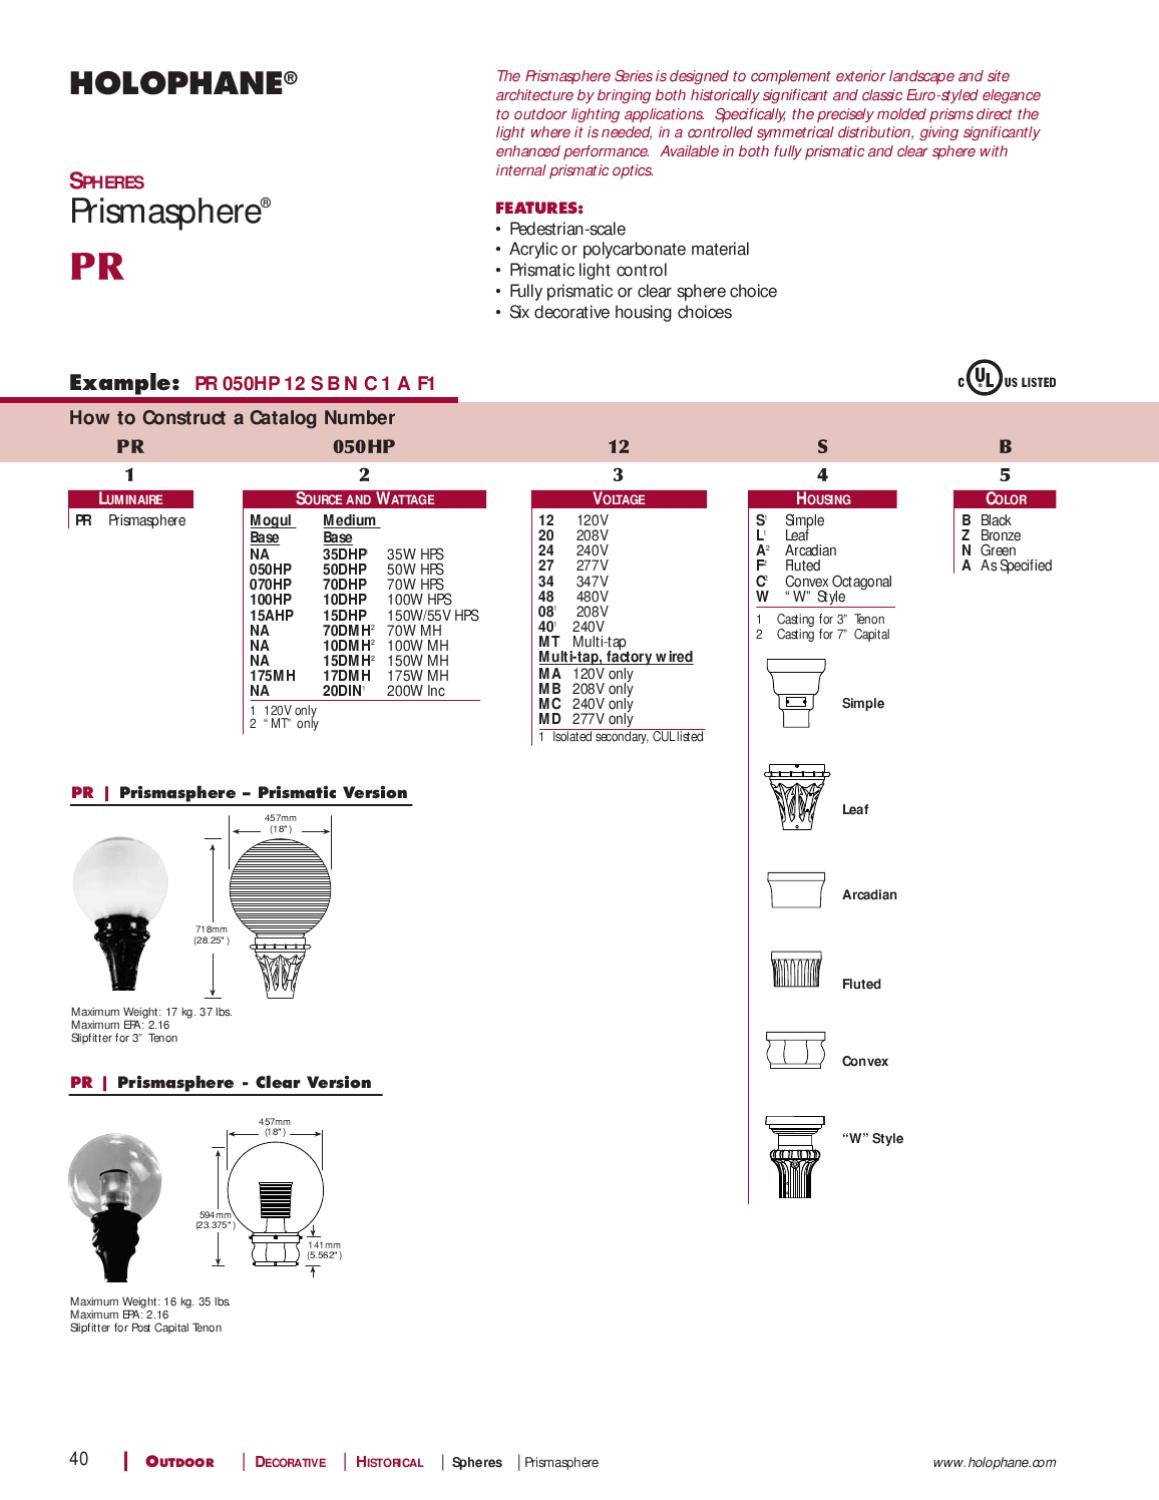 Holophane Washington Post Lite Wiring Diagram Diagrams Outdoor Product Catalog By Alcon Lighting Issuu